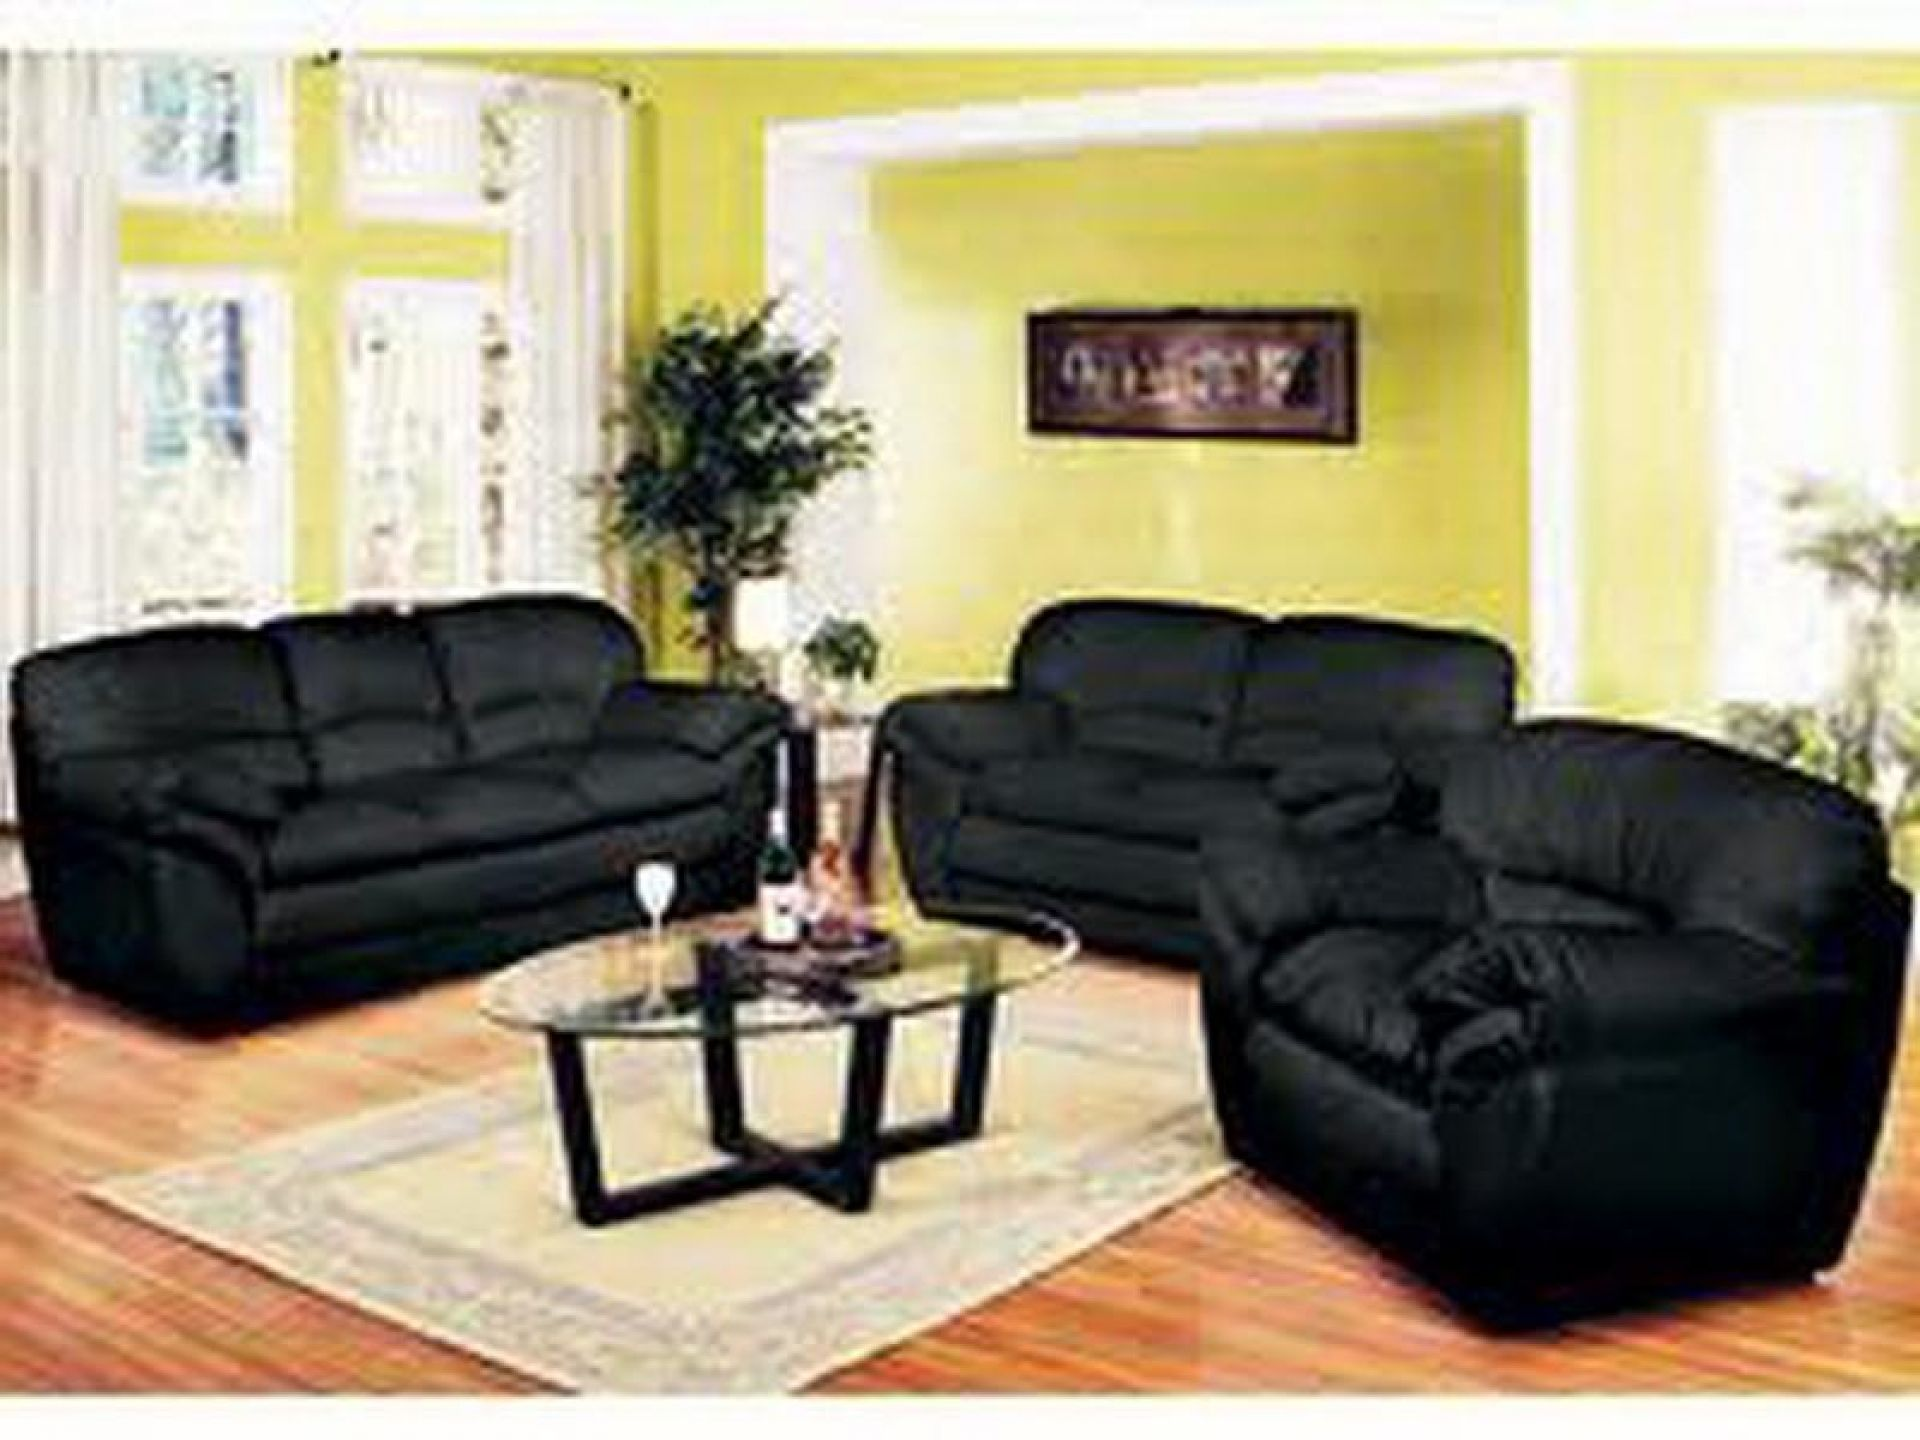 Modern Black Living Room Furniture Black Living Room With Black Furniture  Decorating Black Living Room Furniture Black Fu. Part 38